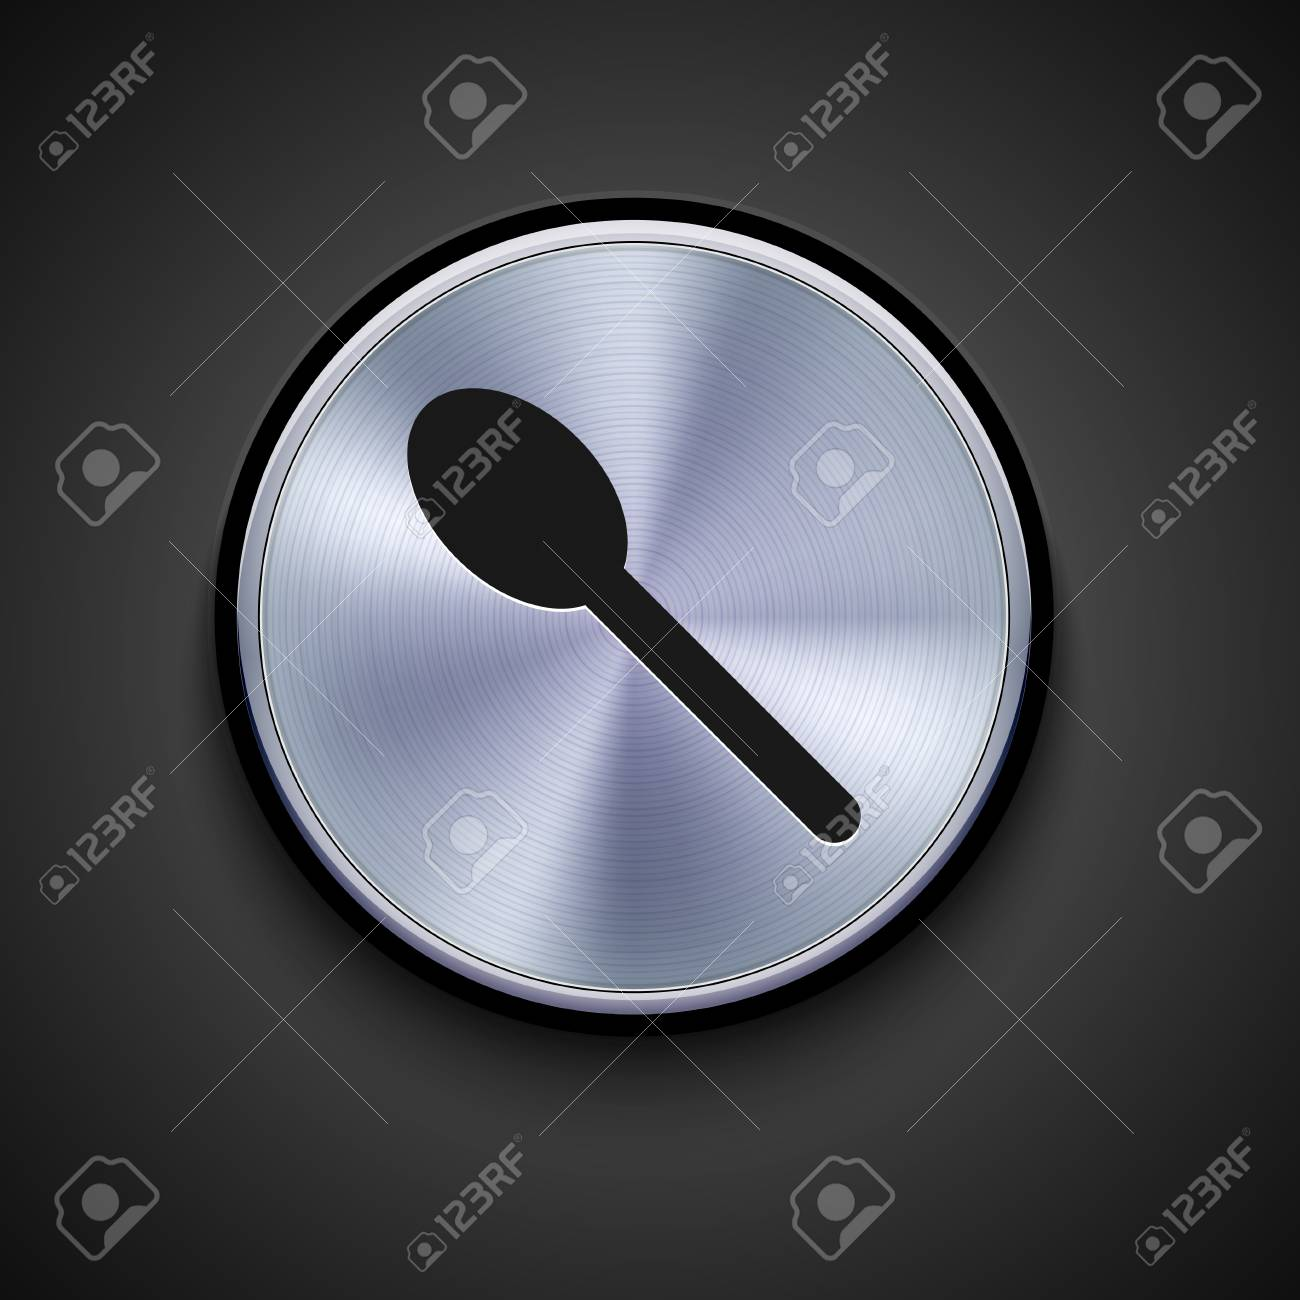 vector metal icon on gray background. Eps10 Stock Vector - 17275495